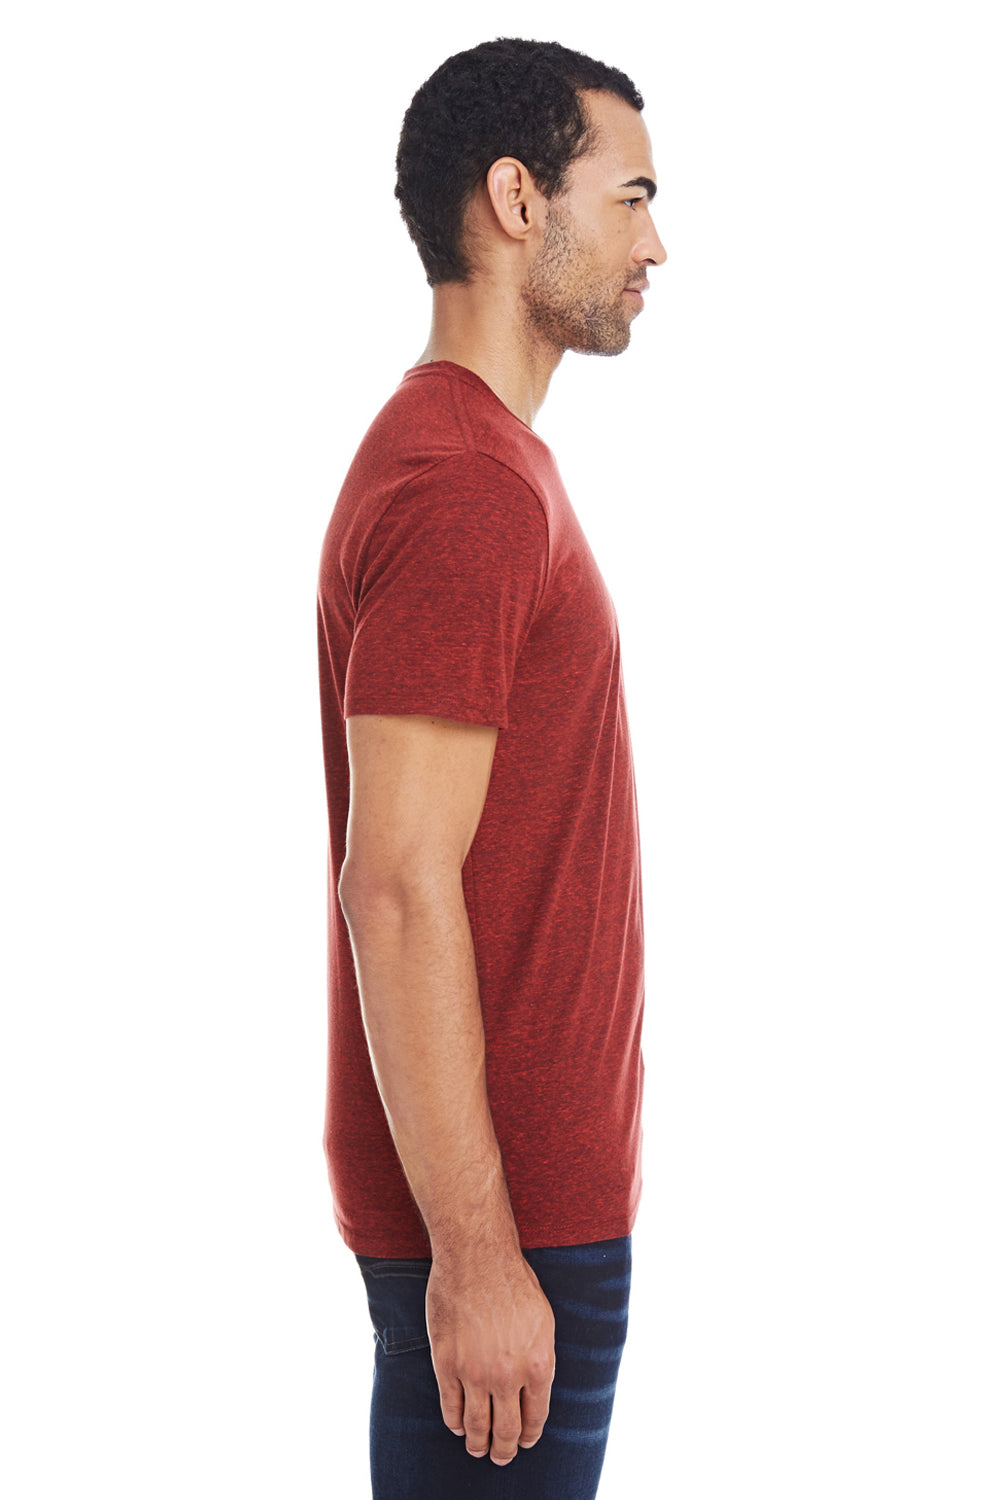 Threadfast Apparel 102A Mens Short Sleeve Crewneck T-Shirt Cardinal Red Side